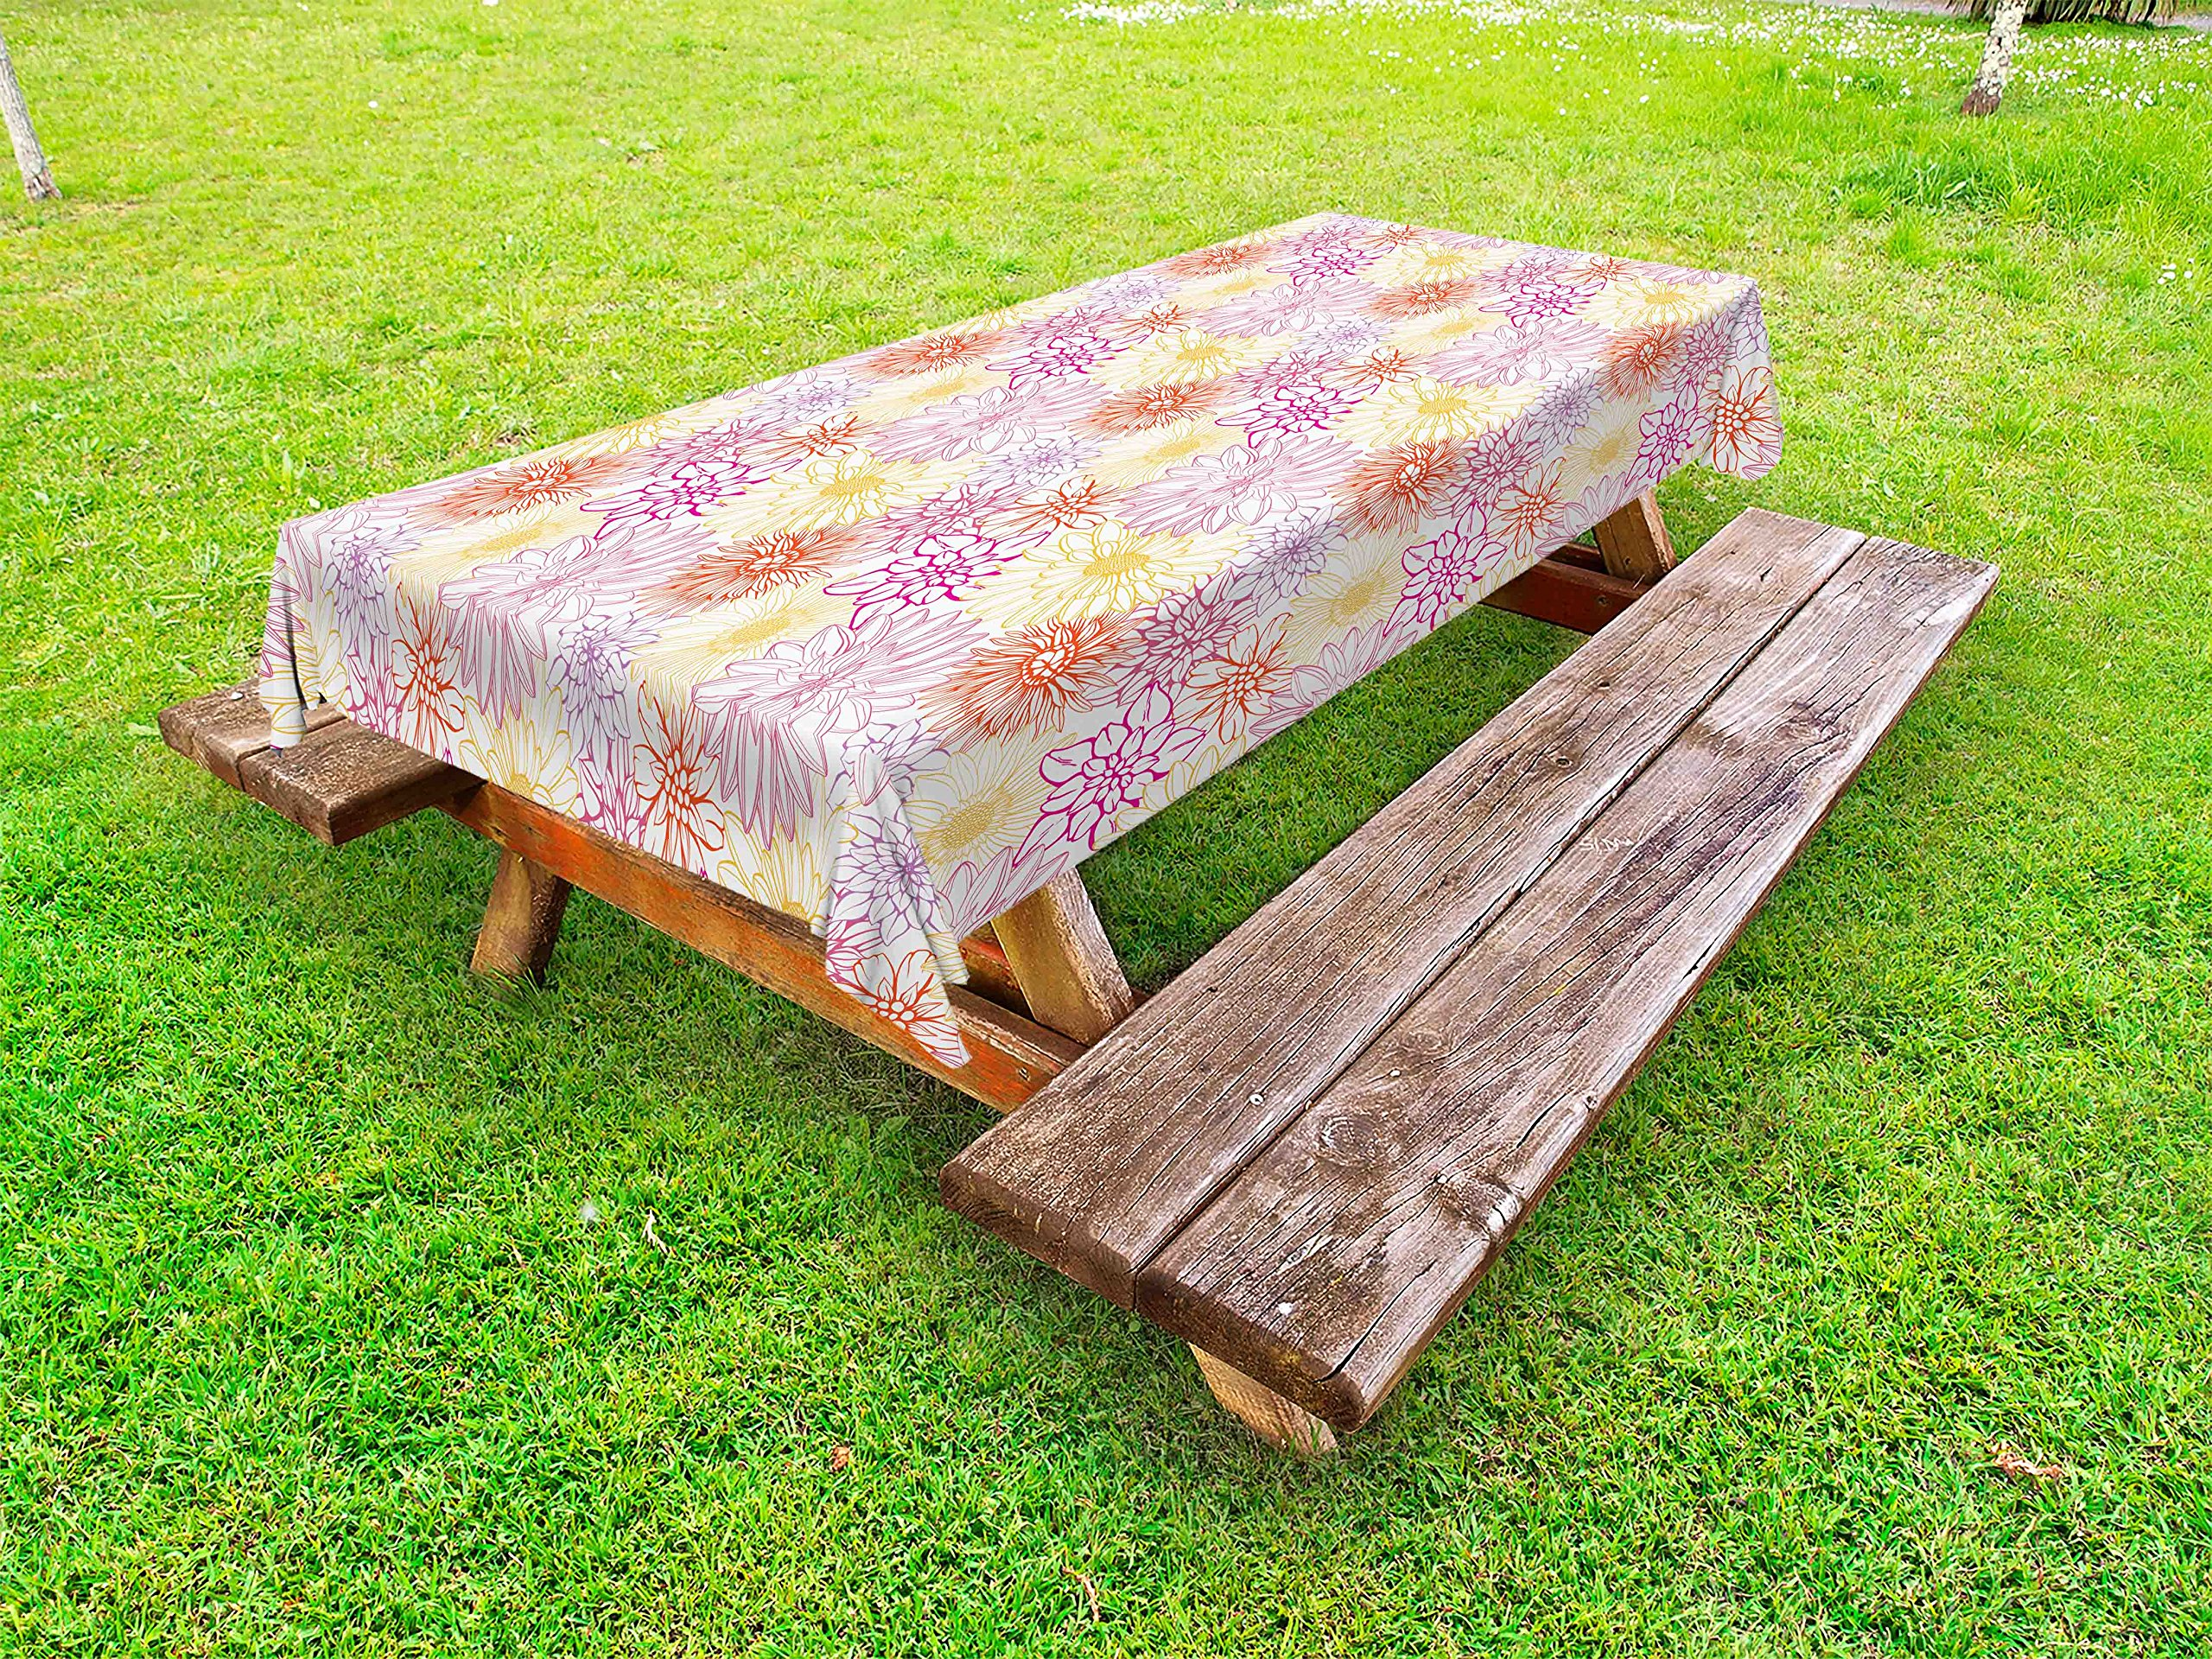 Ambesonne Floral Outdoor Tablecloth, Blossom Spa Gardening Theme Flower Petals Essence Bouquet Art, Decorative Washable Picnic Table Cloth, 58 X 120 inches, Pale Yellow Dark Coral Fuchsia